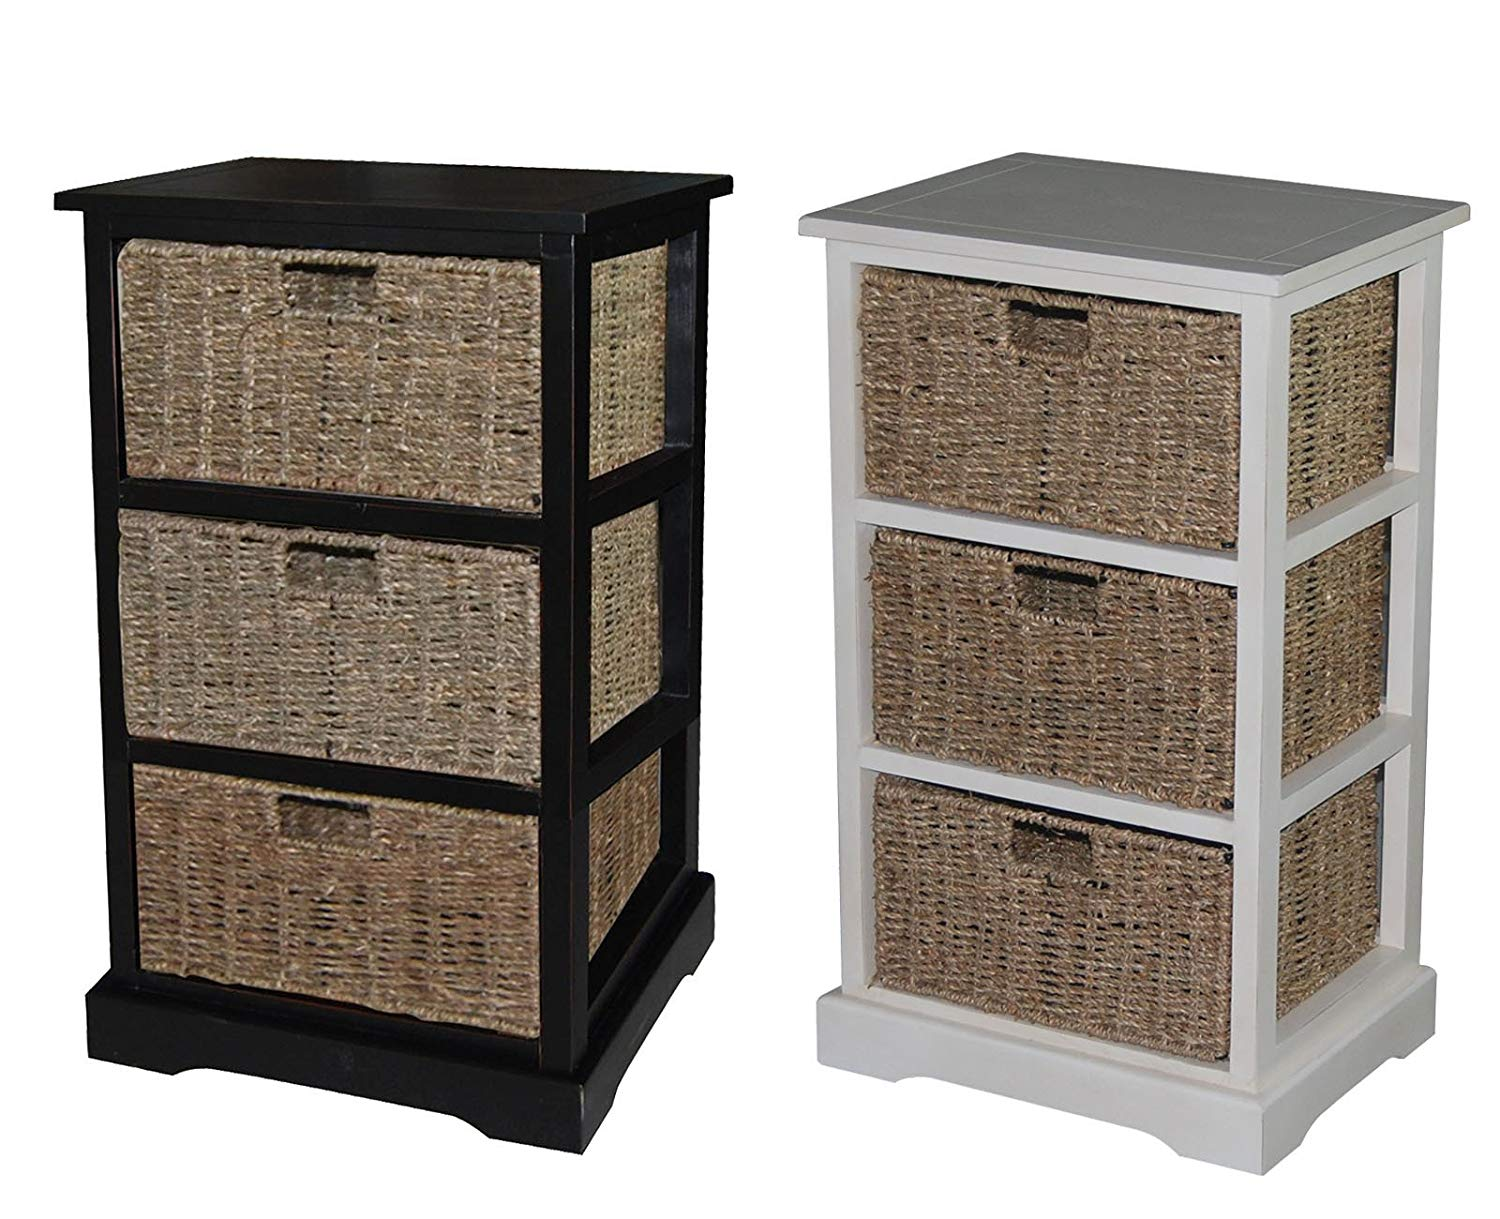 Charmant Urbanest 1000479 Accent Storage Cabinet With Three Seagrass Basket Drawers,  Antique Black